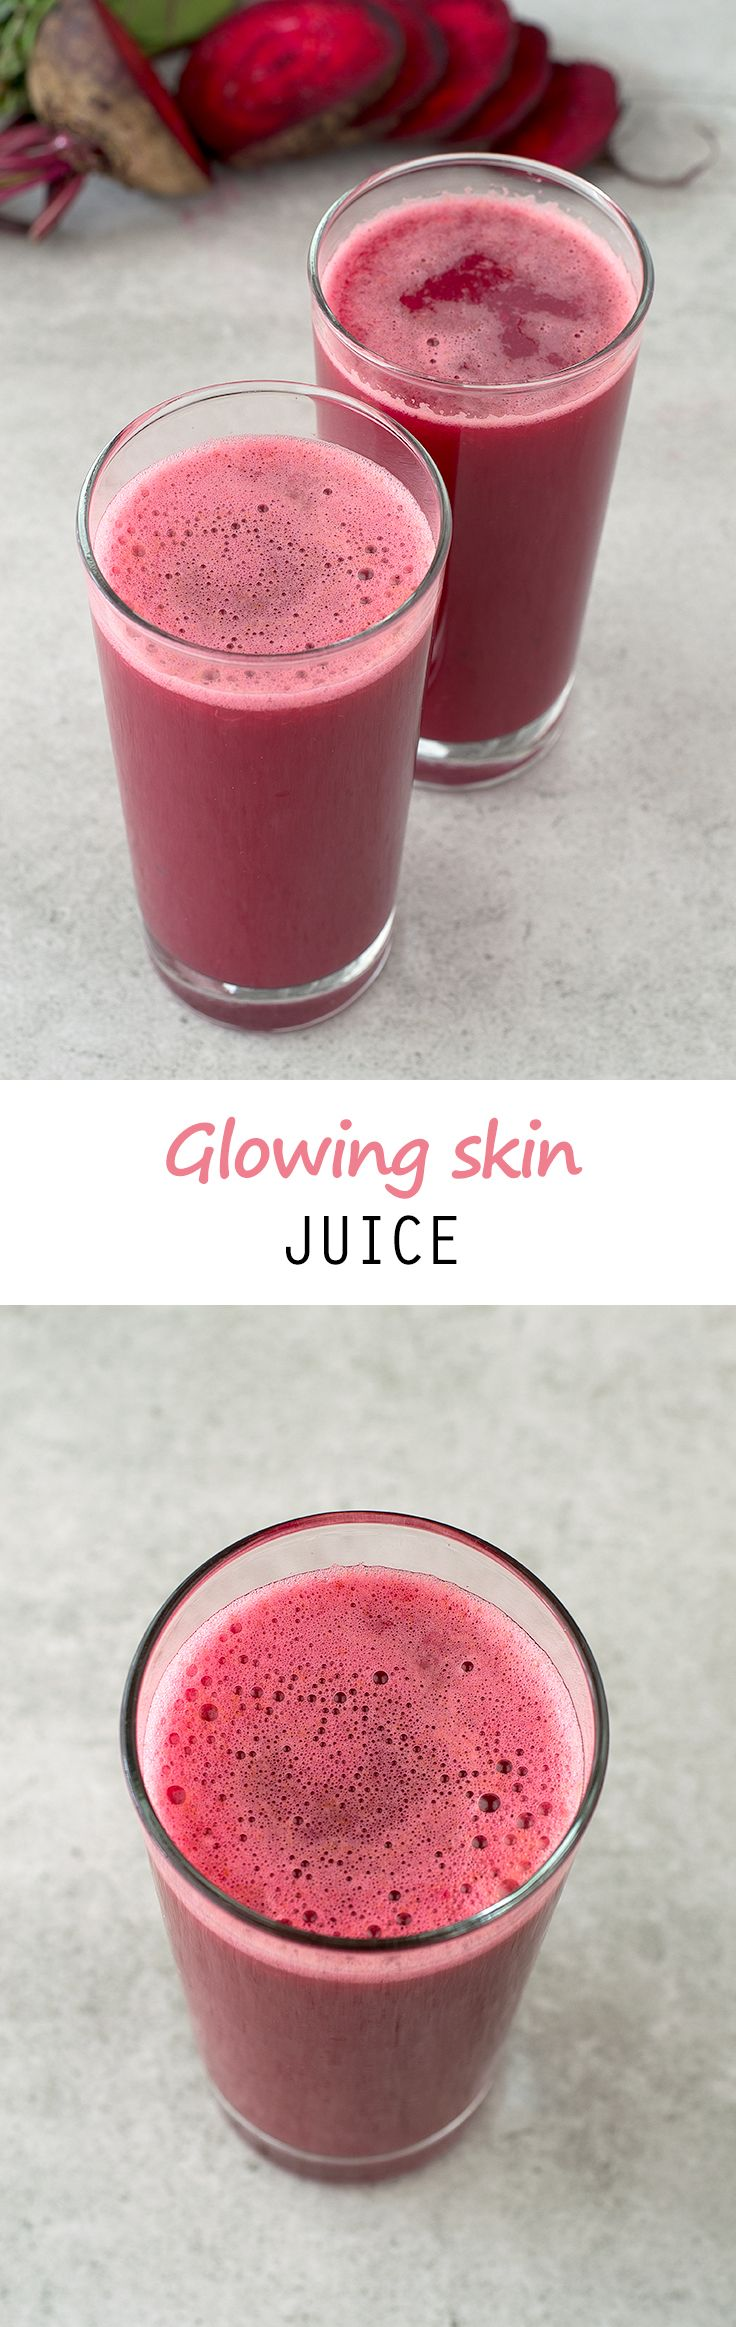 (Vegan and GF) Glowing Skin Juice | simpleveganblog.com #vegan #glutenfree